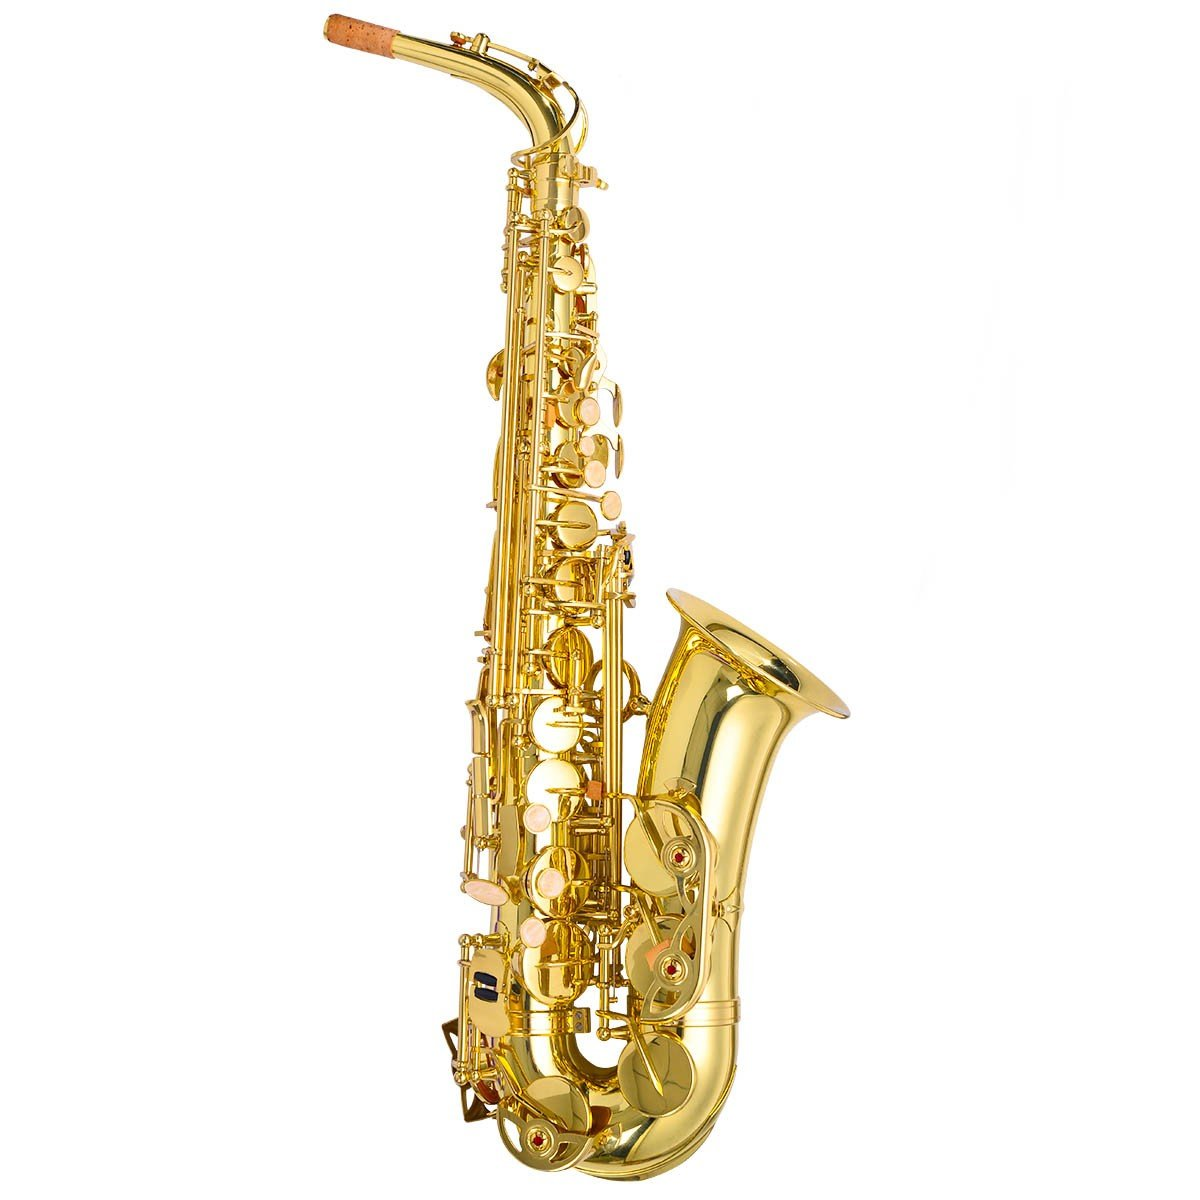 Professional Eb Alto Saxophone with Case And Accessories Saxophone Sax Alto New Gold Eb Professional Paint Lade Bb Tenor Brass Soprano Keys Black Selmer Series BESTChoiceForYou